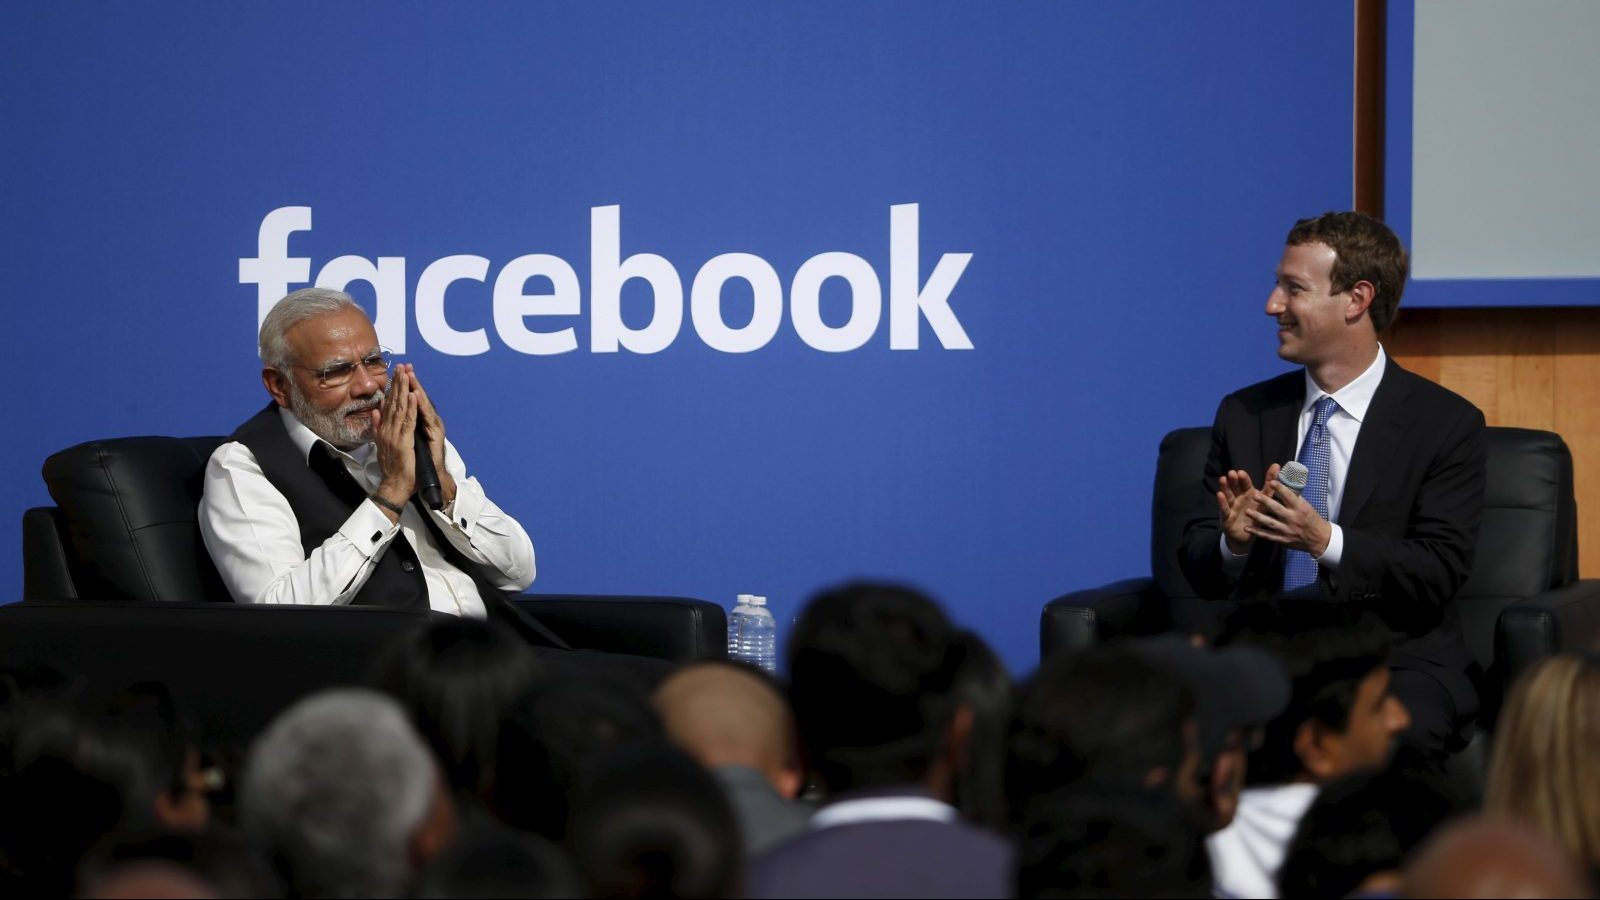 """Indian Prime Minister Narendra Modi (L) gives a """"namaste"""", a gesture of greeting, as Facebook CEO Mark Zuckerberg applauds on stage after a town hall at Facebook's headquarters in Menlo Park, California September 27, 2015. REUTERS/Stephen Lam - GF10000223695"""